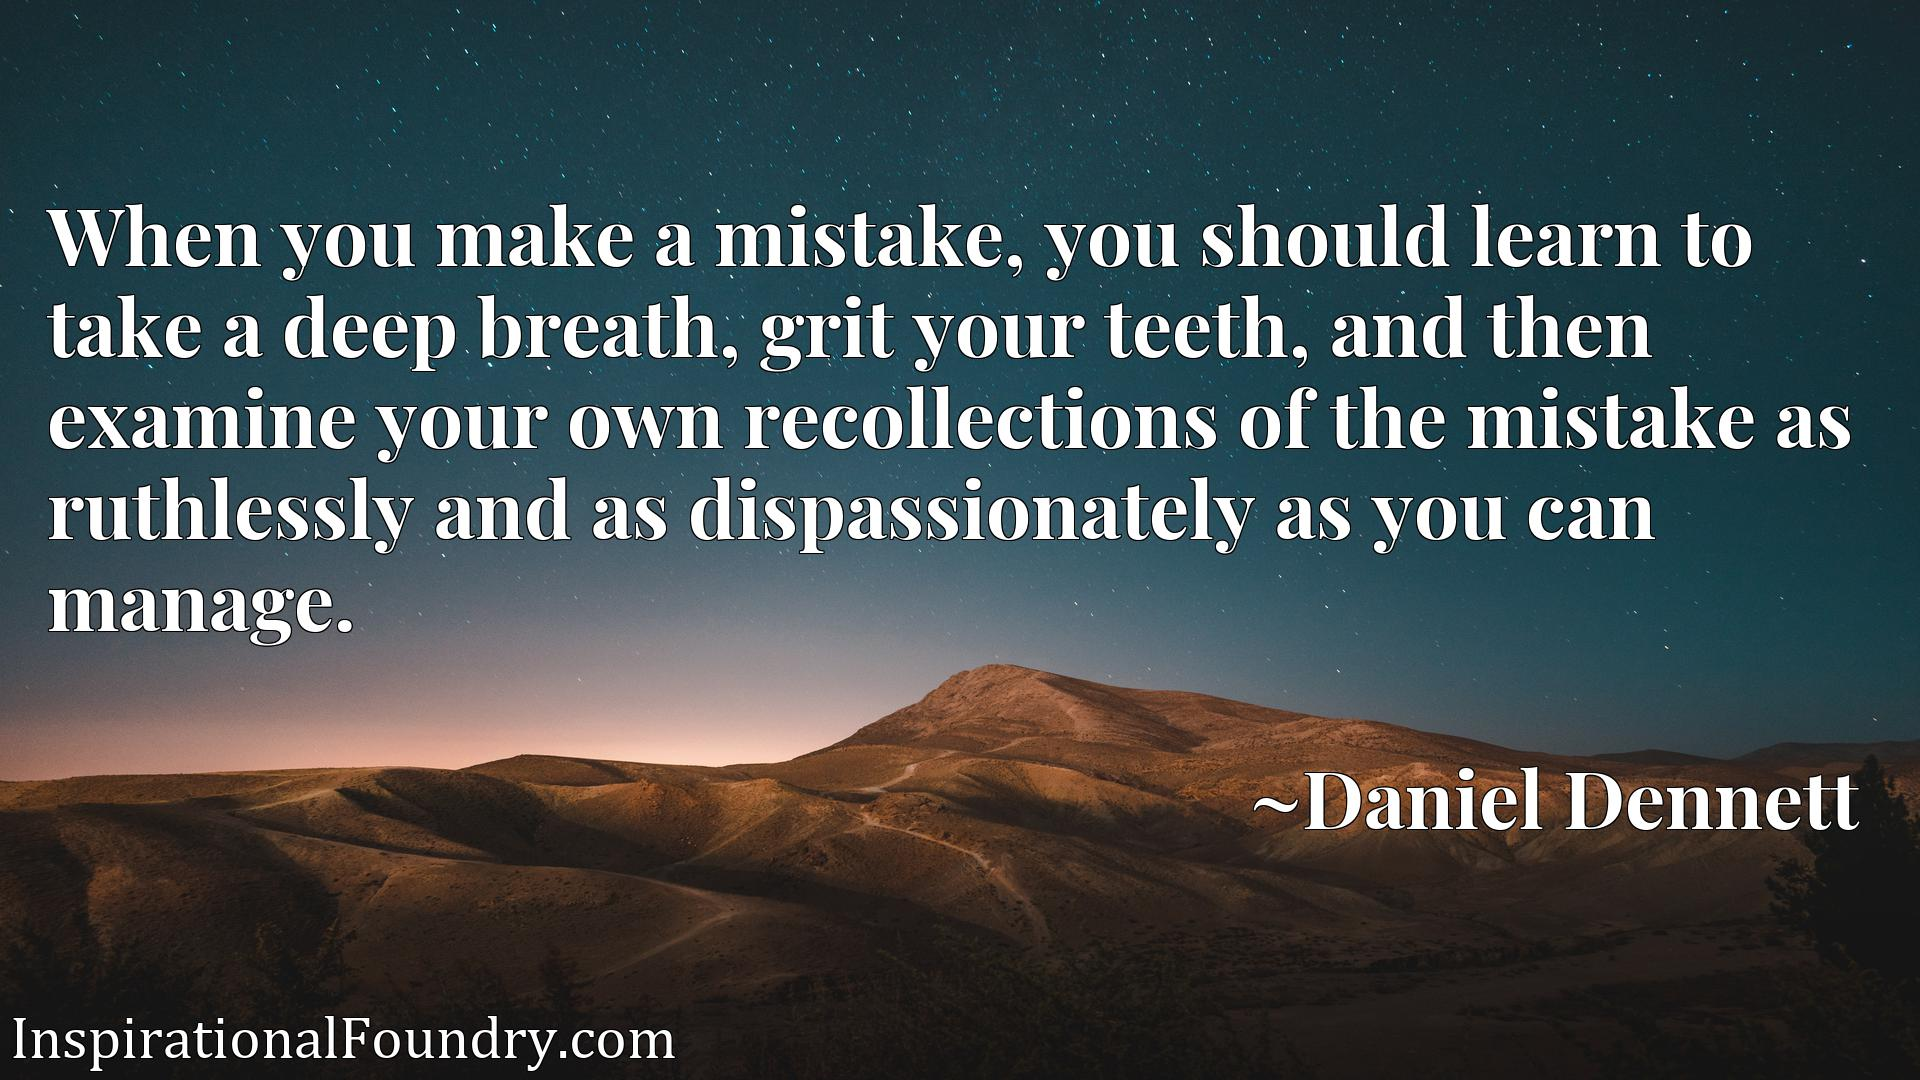 When you make a mistake, you should learn to take a deep breath, grit your teeth, and then examine your own recollections of the mistake as ruthlessly and as dispassionately as you can manage.